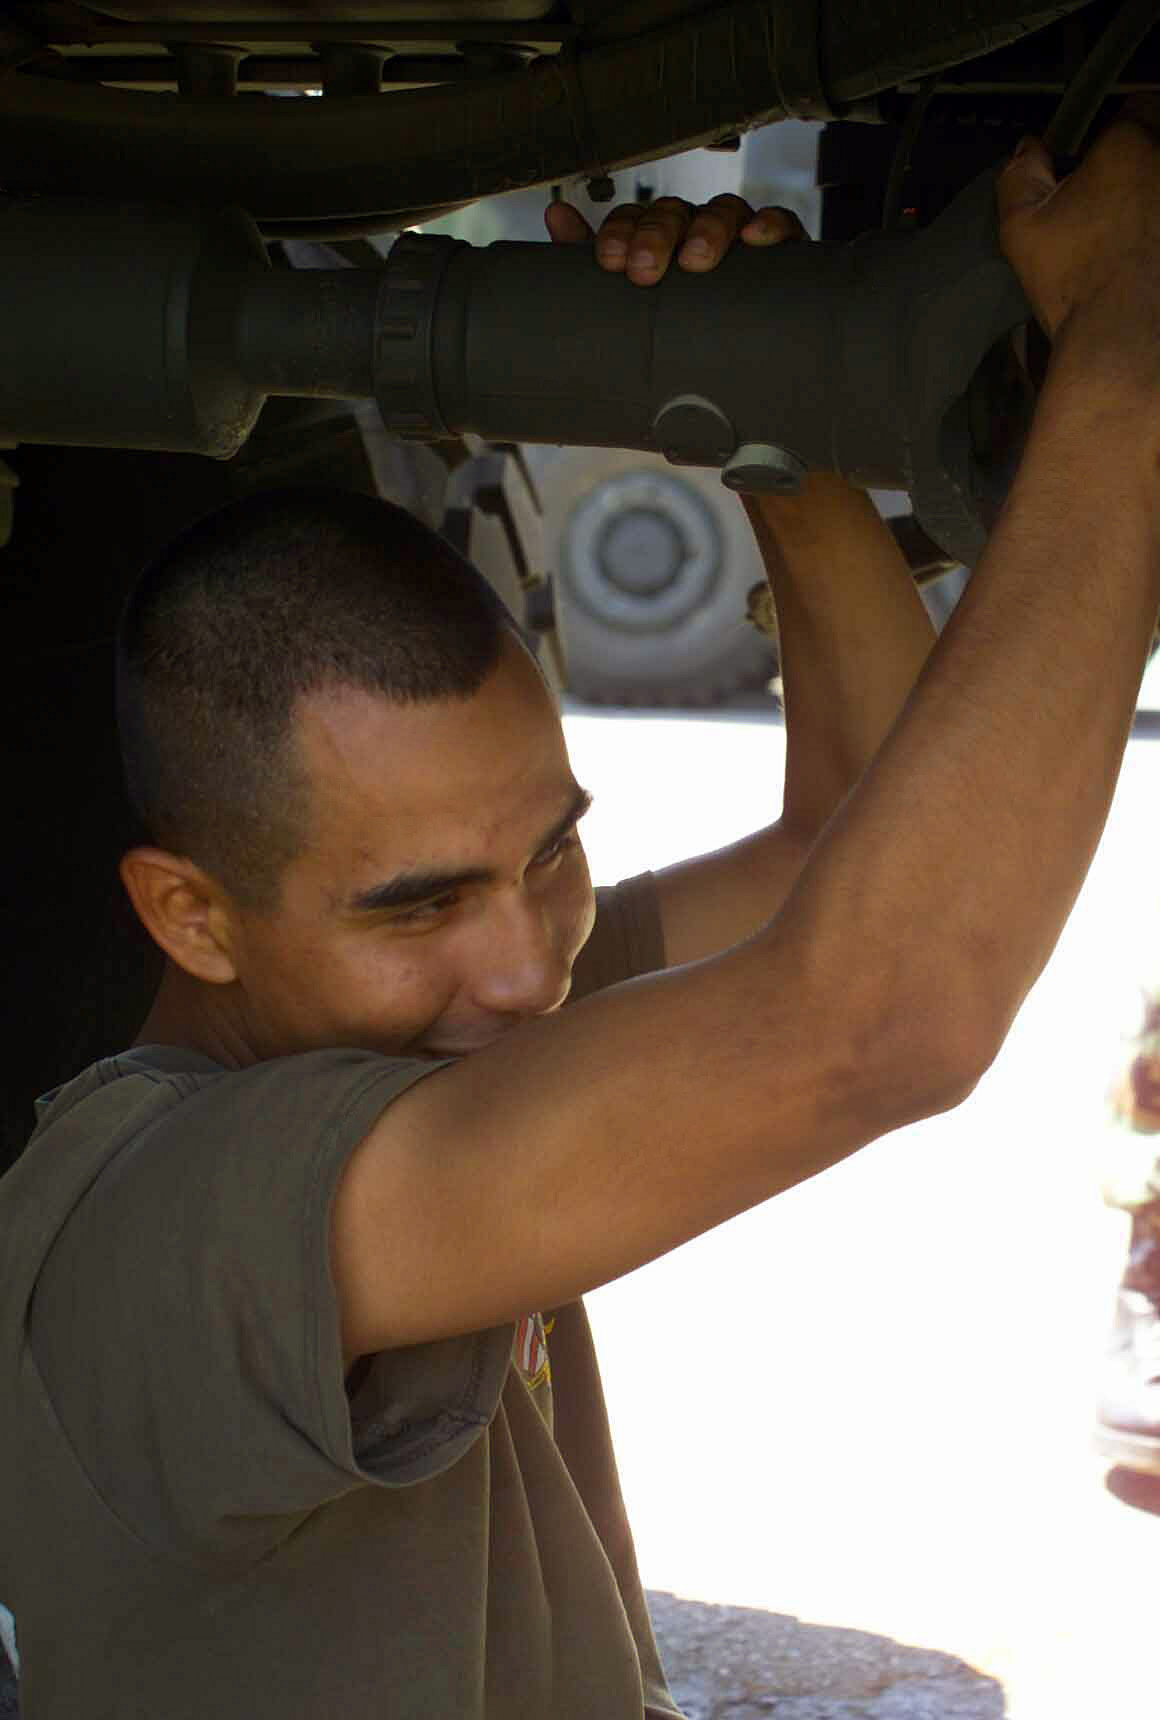 US Marine Corps (USMC) Corporal (CPL) Alejandro Lopez, Motor Transportation Operator, Headquarters Battalion (HQ BN), Truck Company, 1ST Marine Division (MAR DIV), Marine Corps Base (MCB) Camp Pendleton, California (CA), checks the U-joint of a Medium Tactical Vehicle Replacement (MTVR) 7-ton transportation truck in the Companys parking lot. The main goal of Truck Company is to ensure all military vehicles coming their way are in proper working order